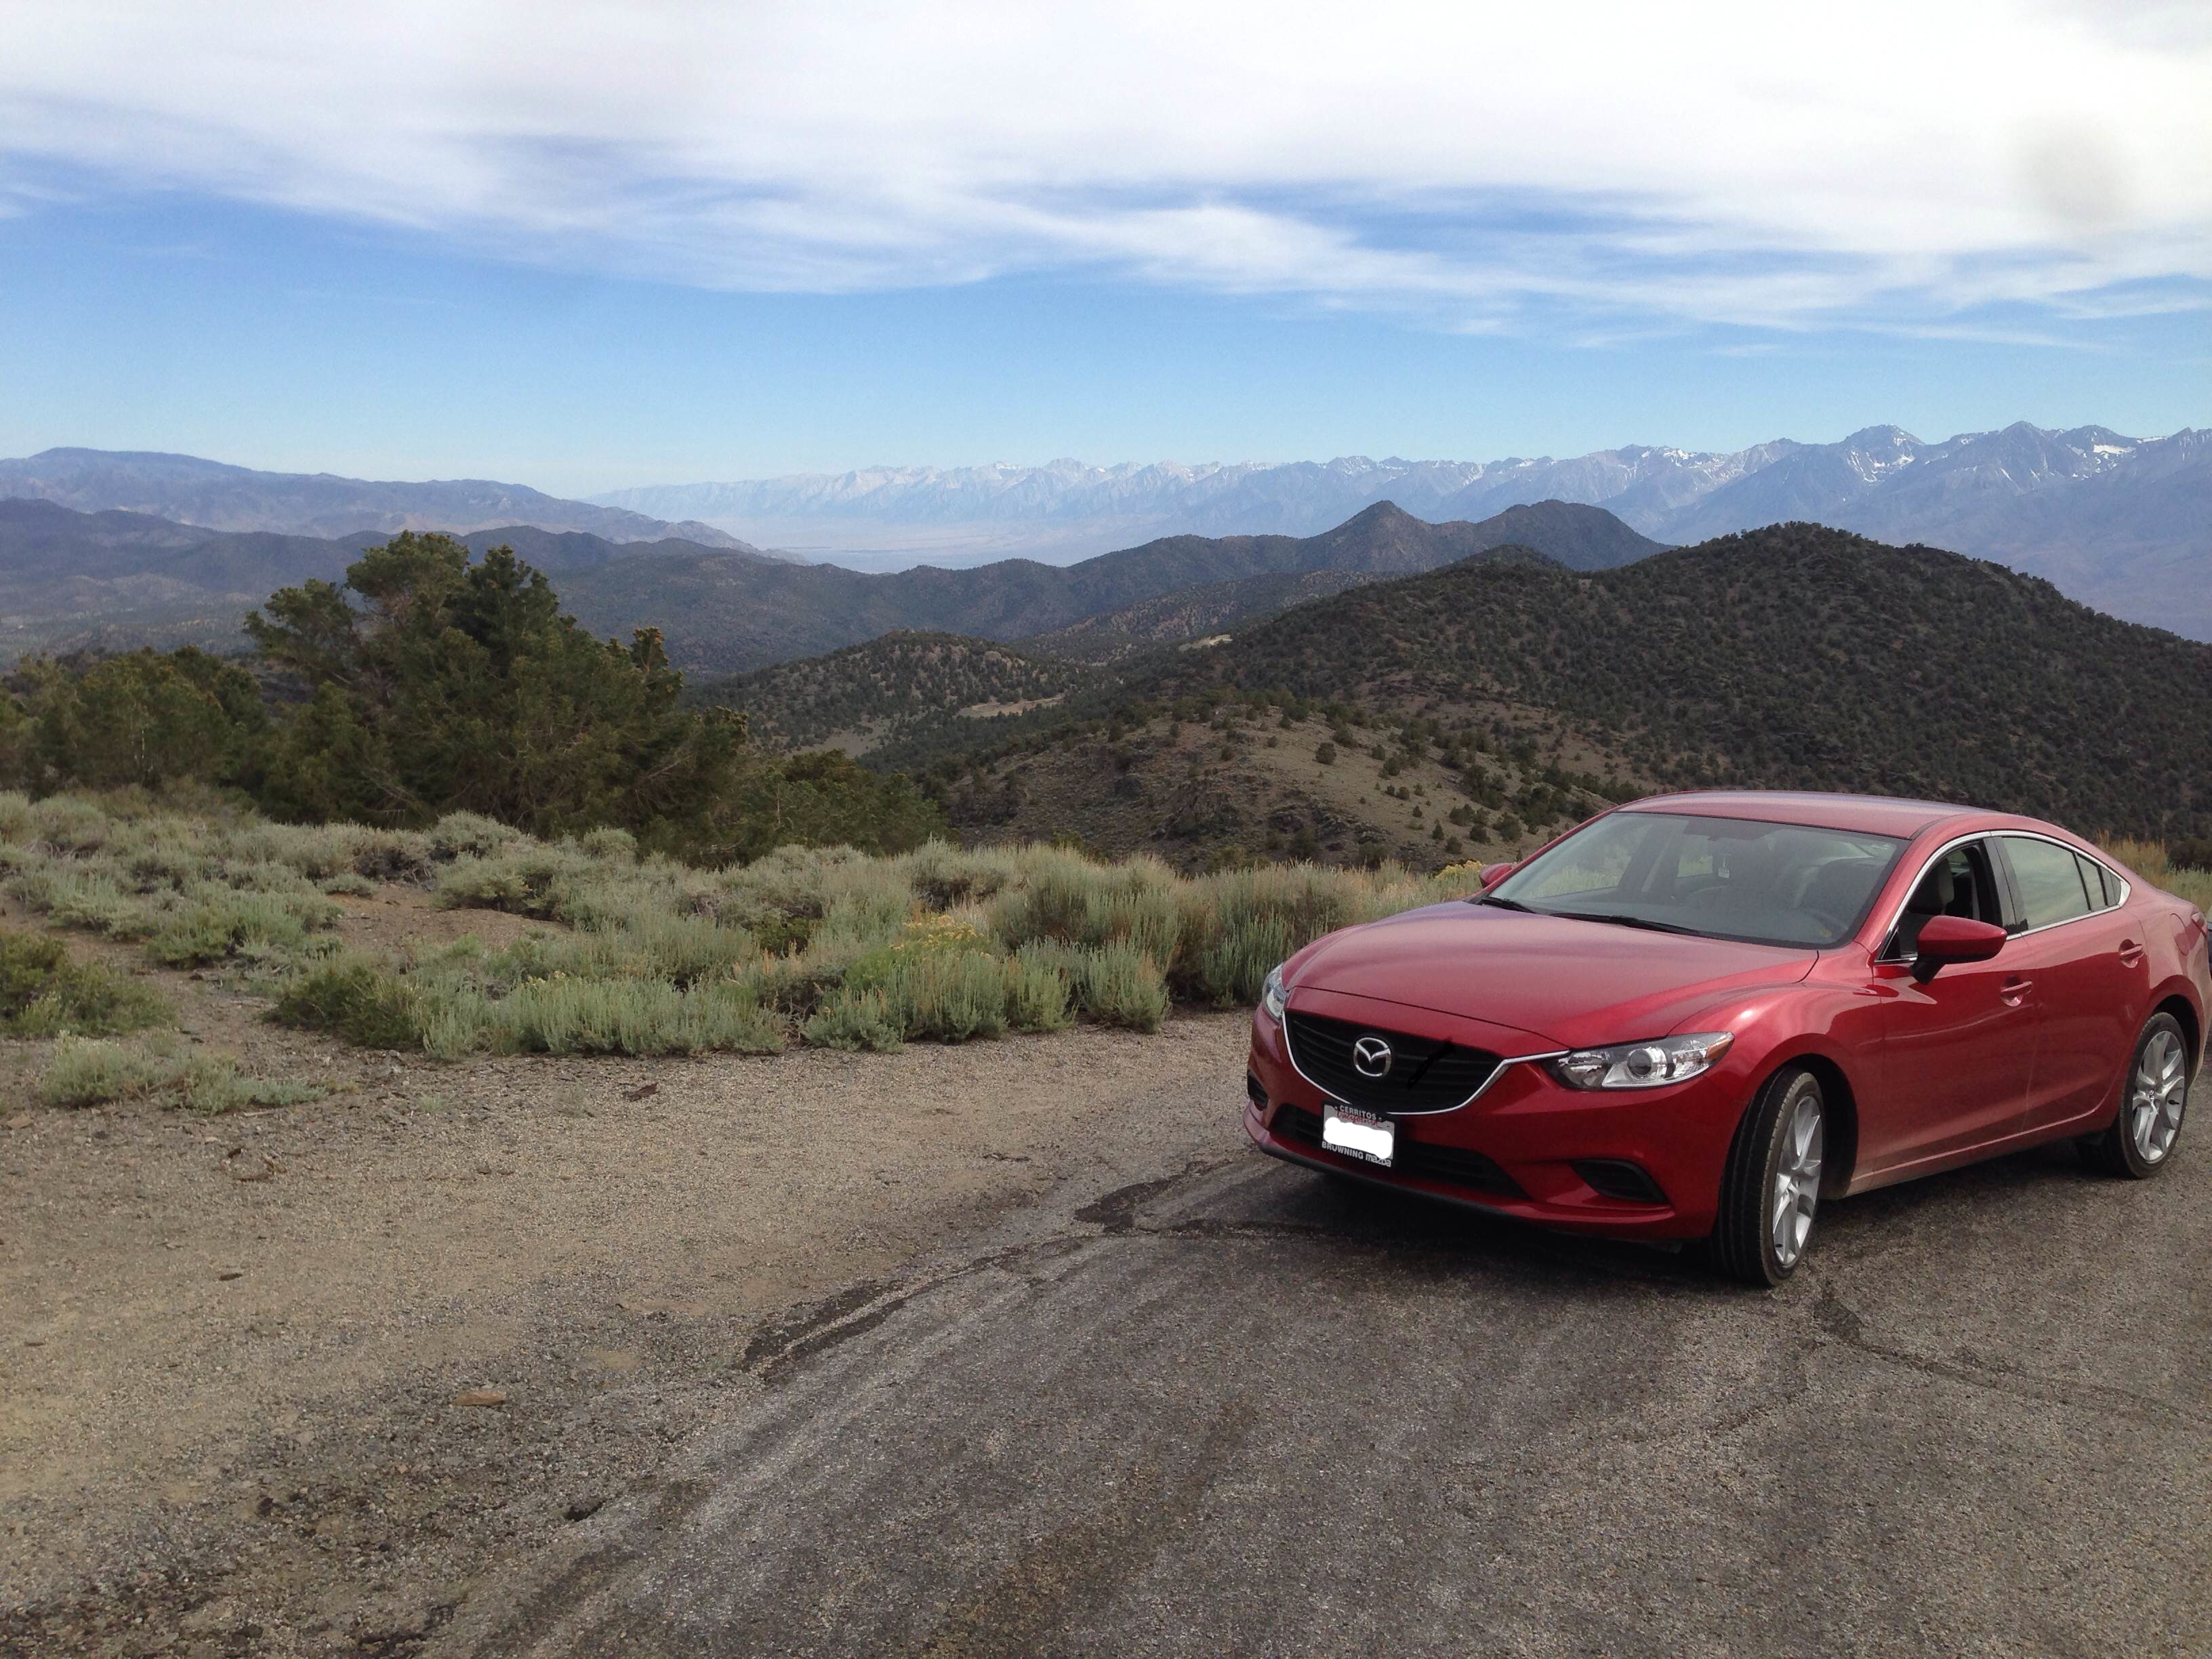 2014 Mazda6 at Ancient Bristlecone Pine Forest